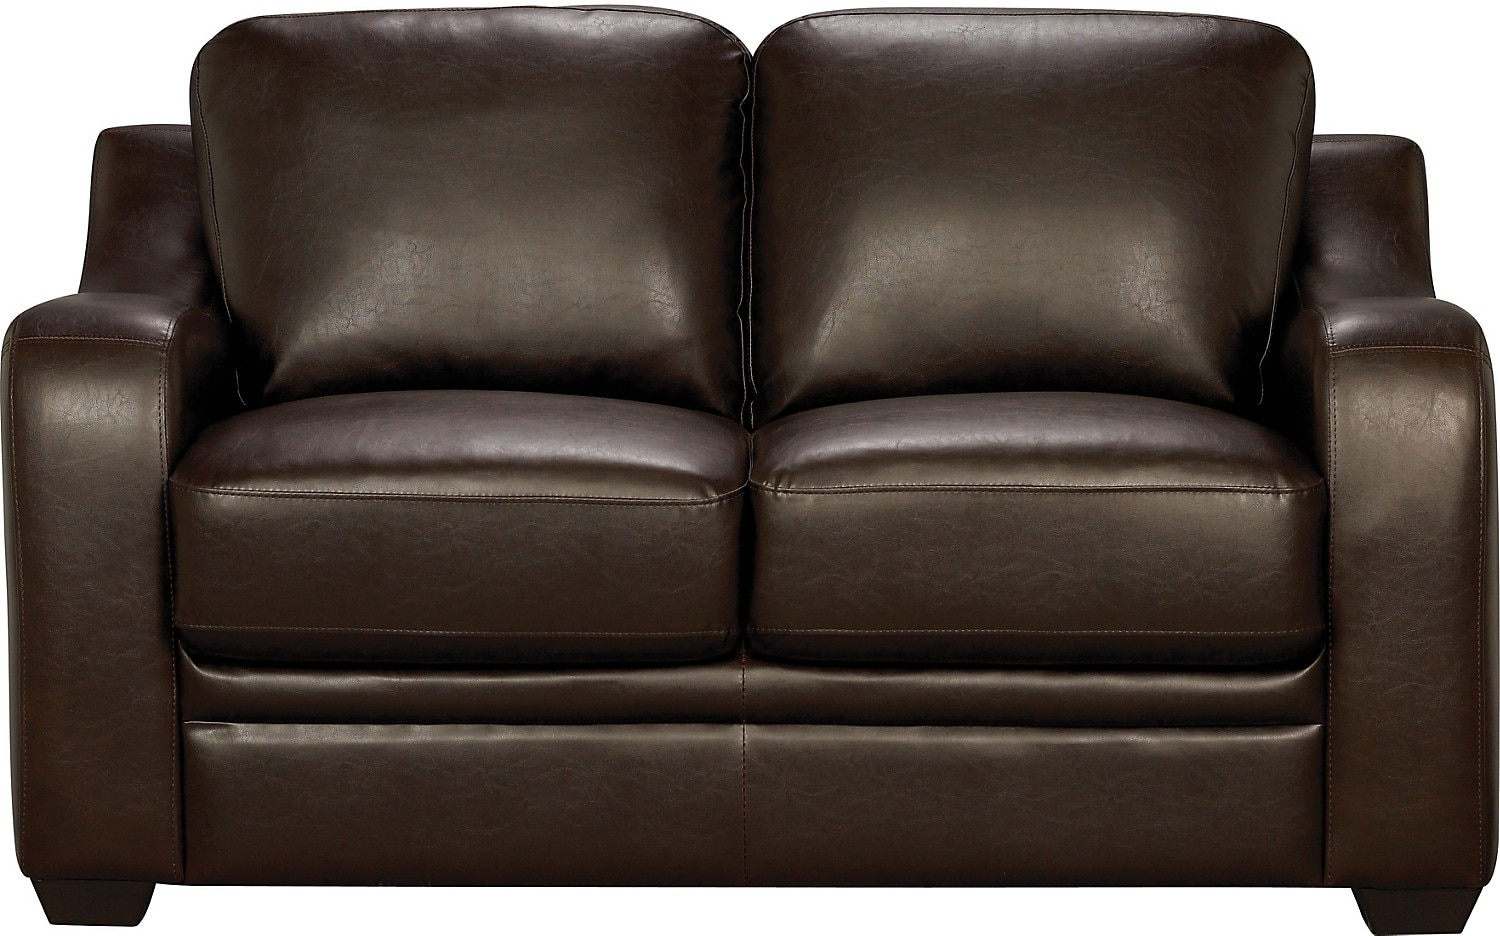 Chase Brown Faux Leather Loveseat The Brick